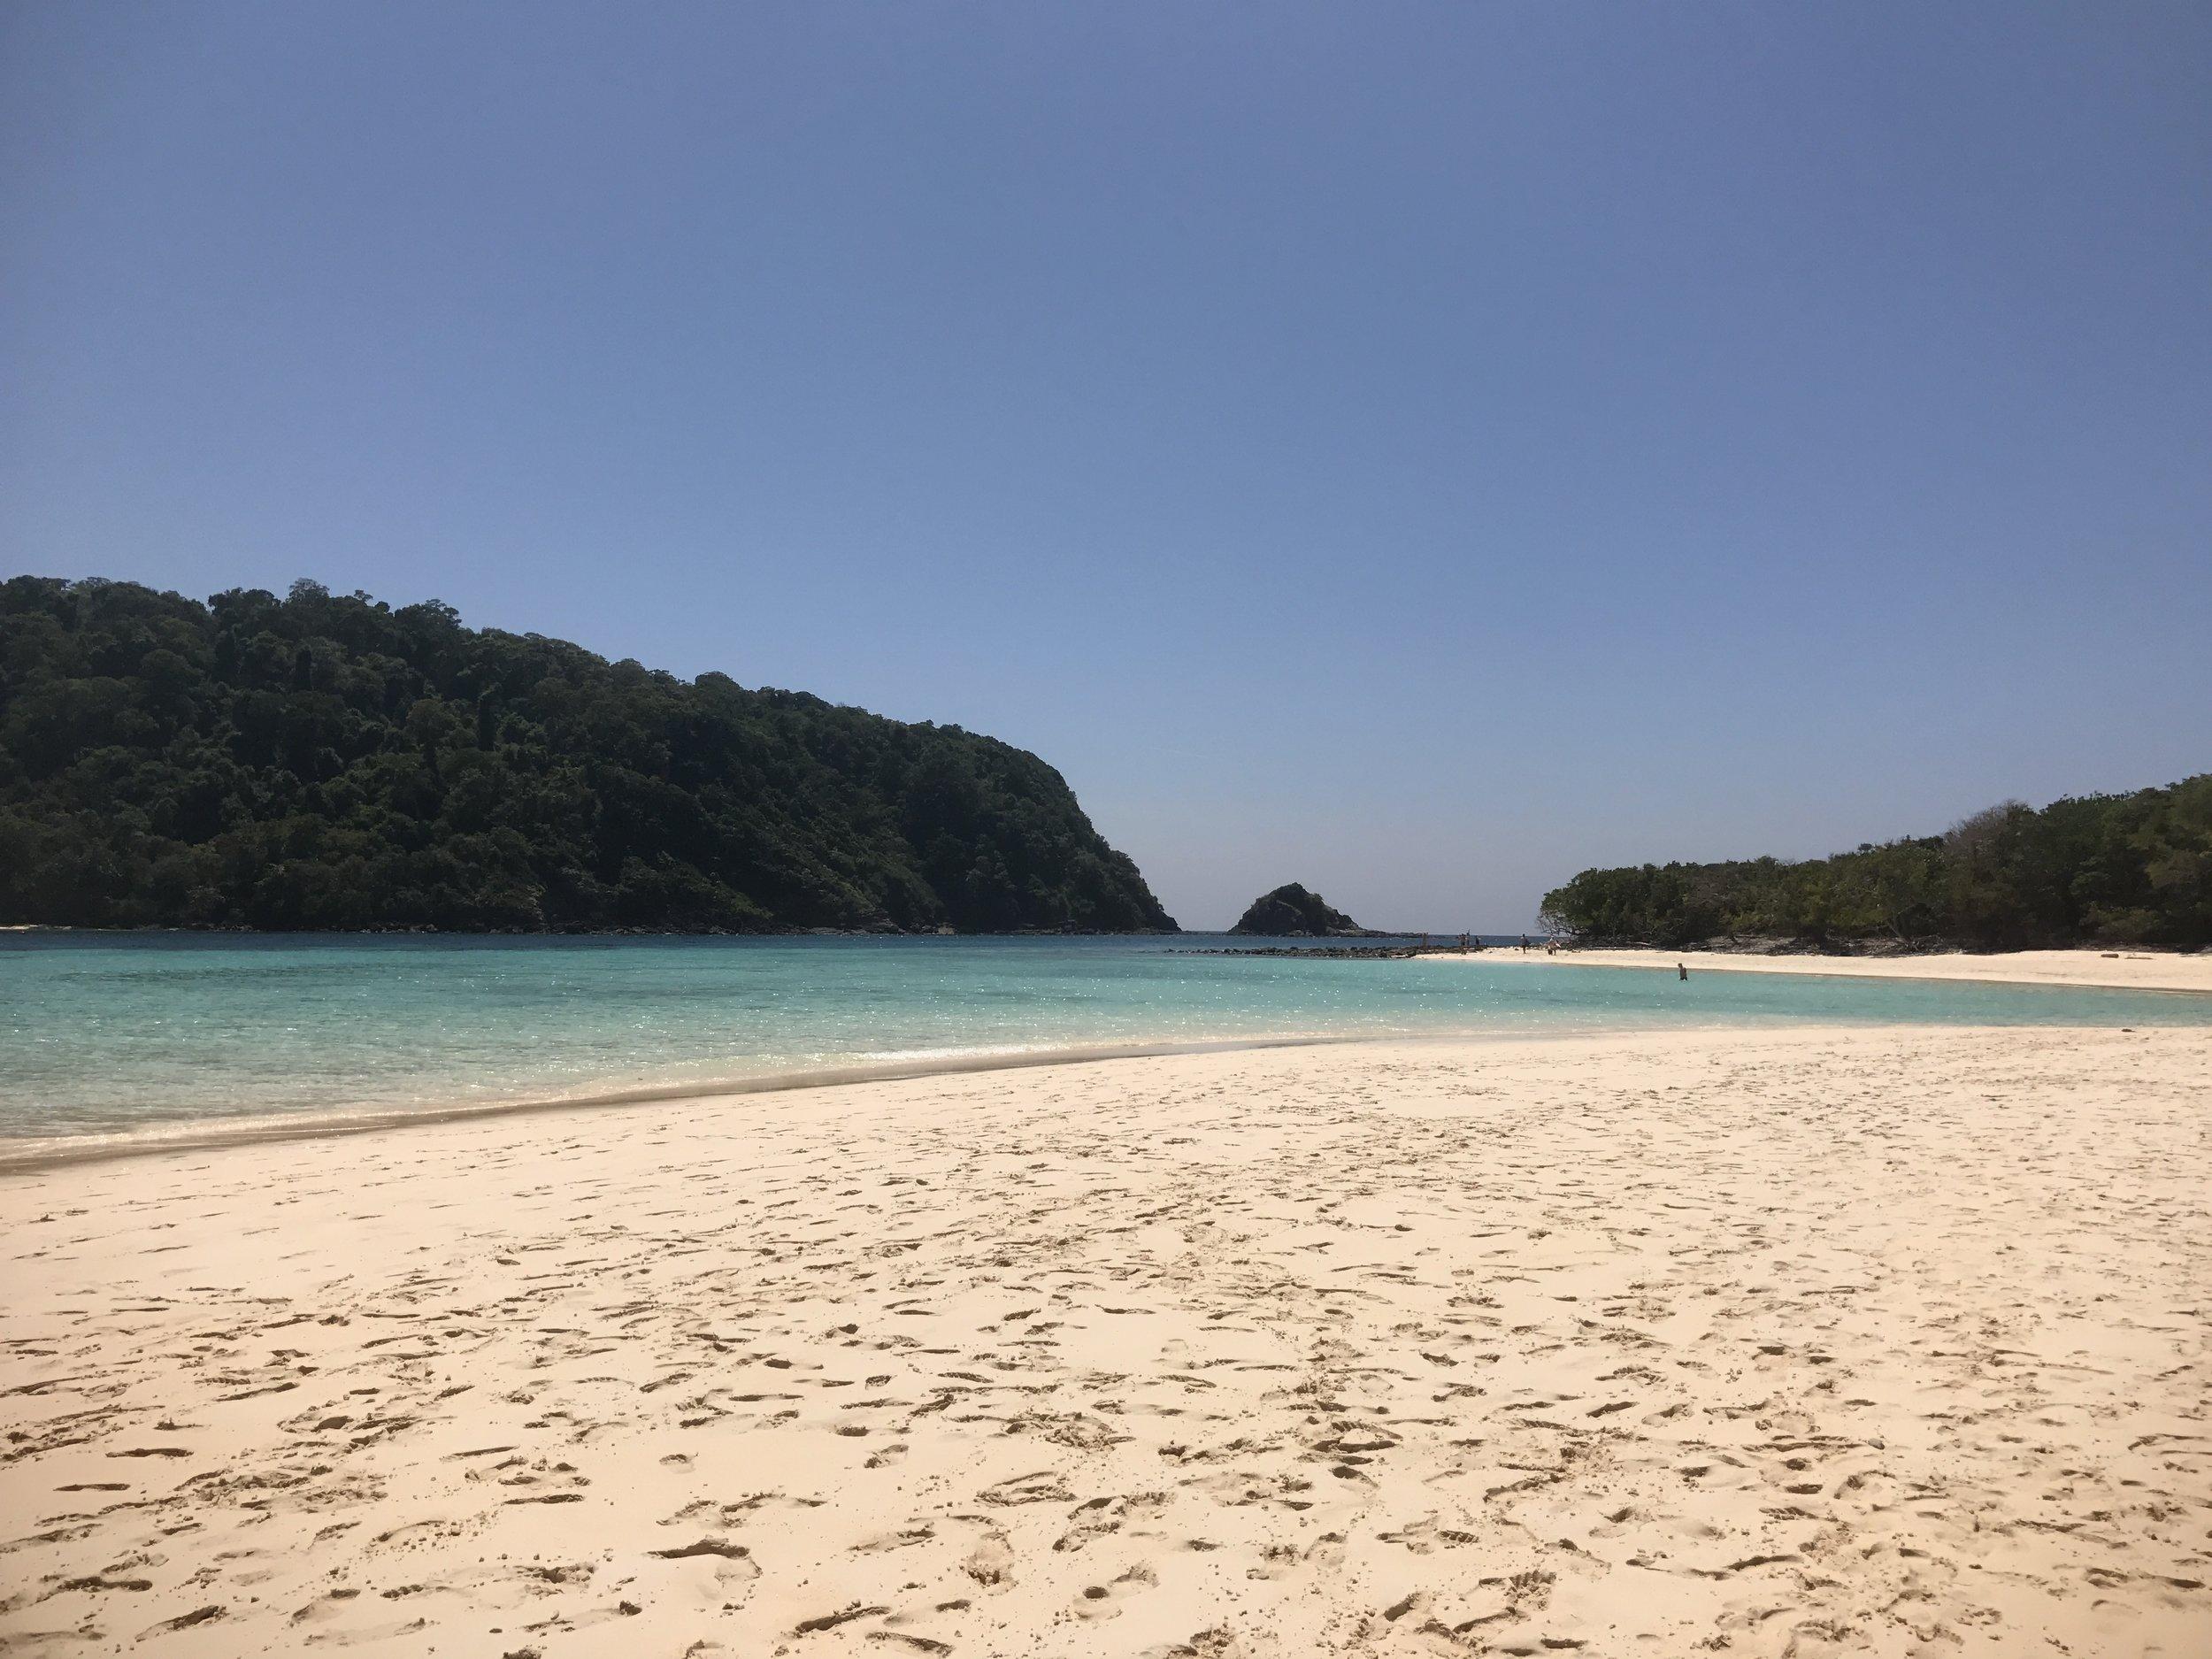 The national park at Koh Rok.